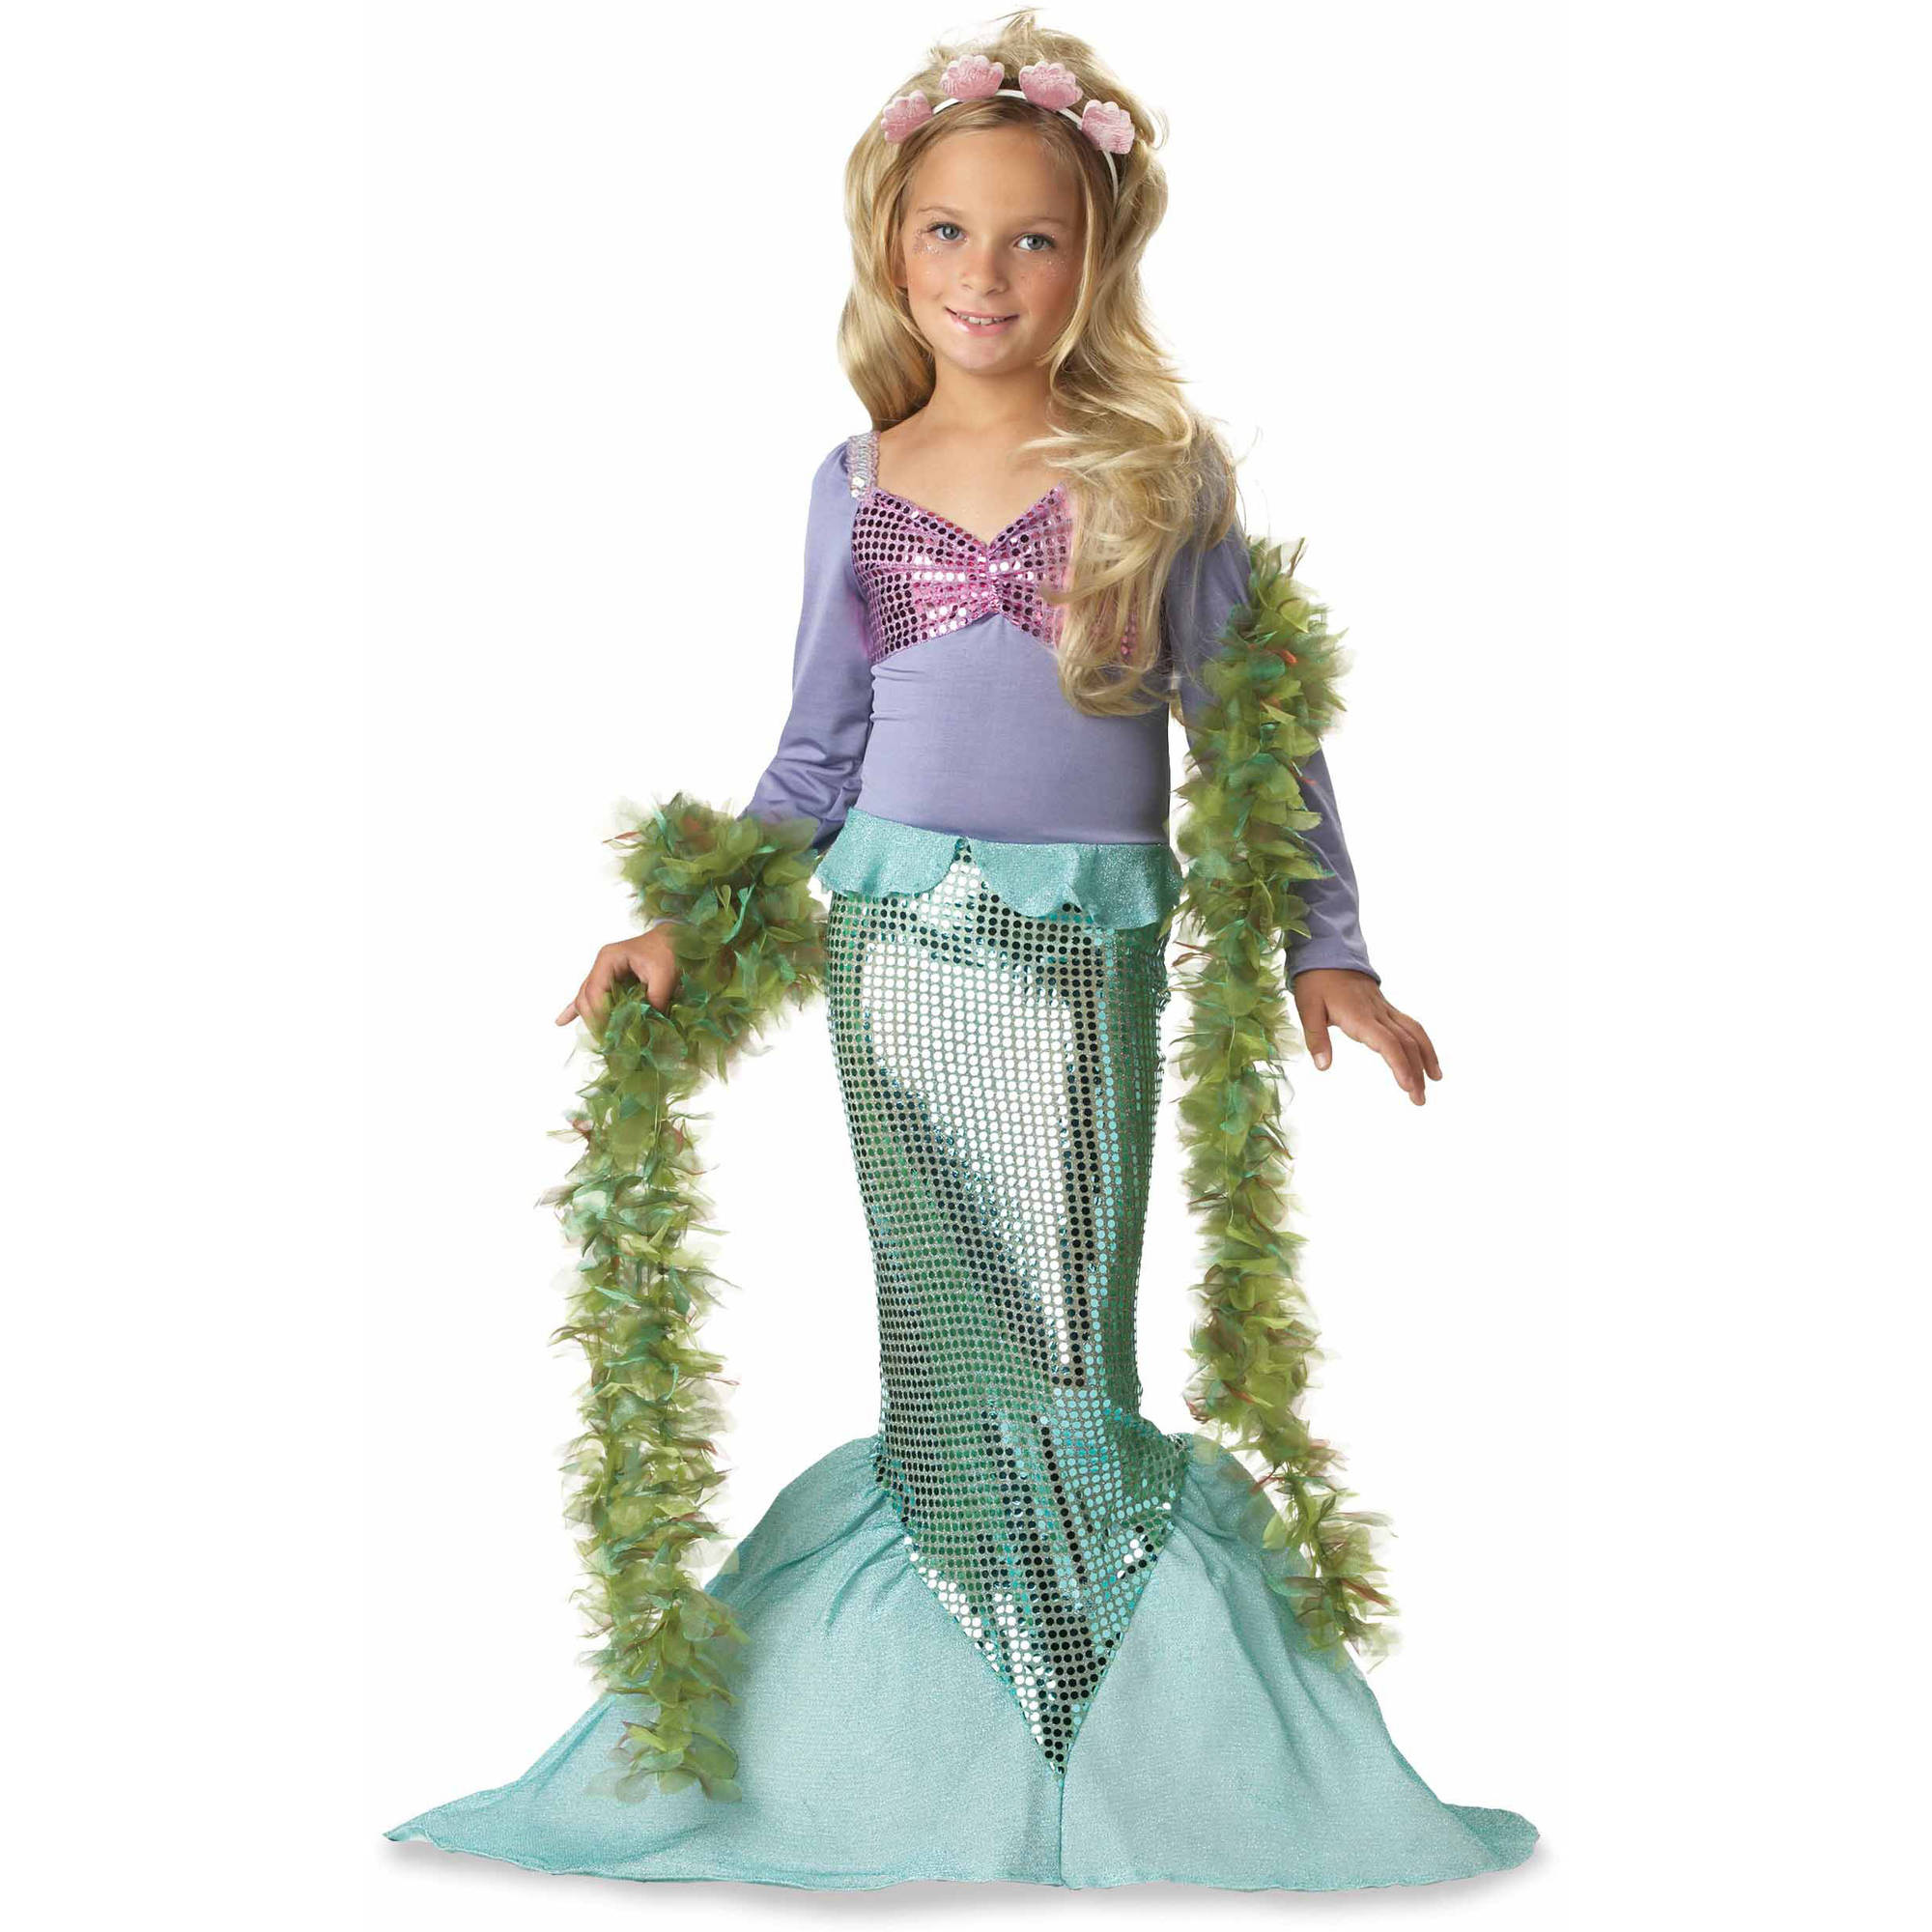 Lilu0027 Mermaid Child Halloween Costume  sc 1 st  Walmart & Lilu0027 Mermaid Child Halloween Costume - Walmart.com